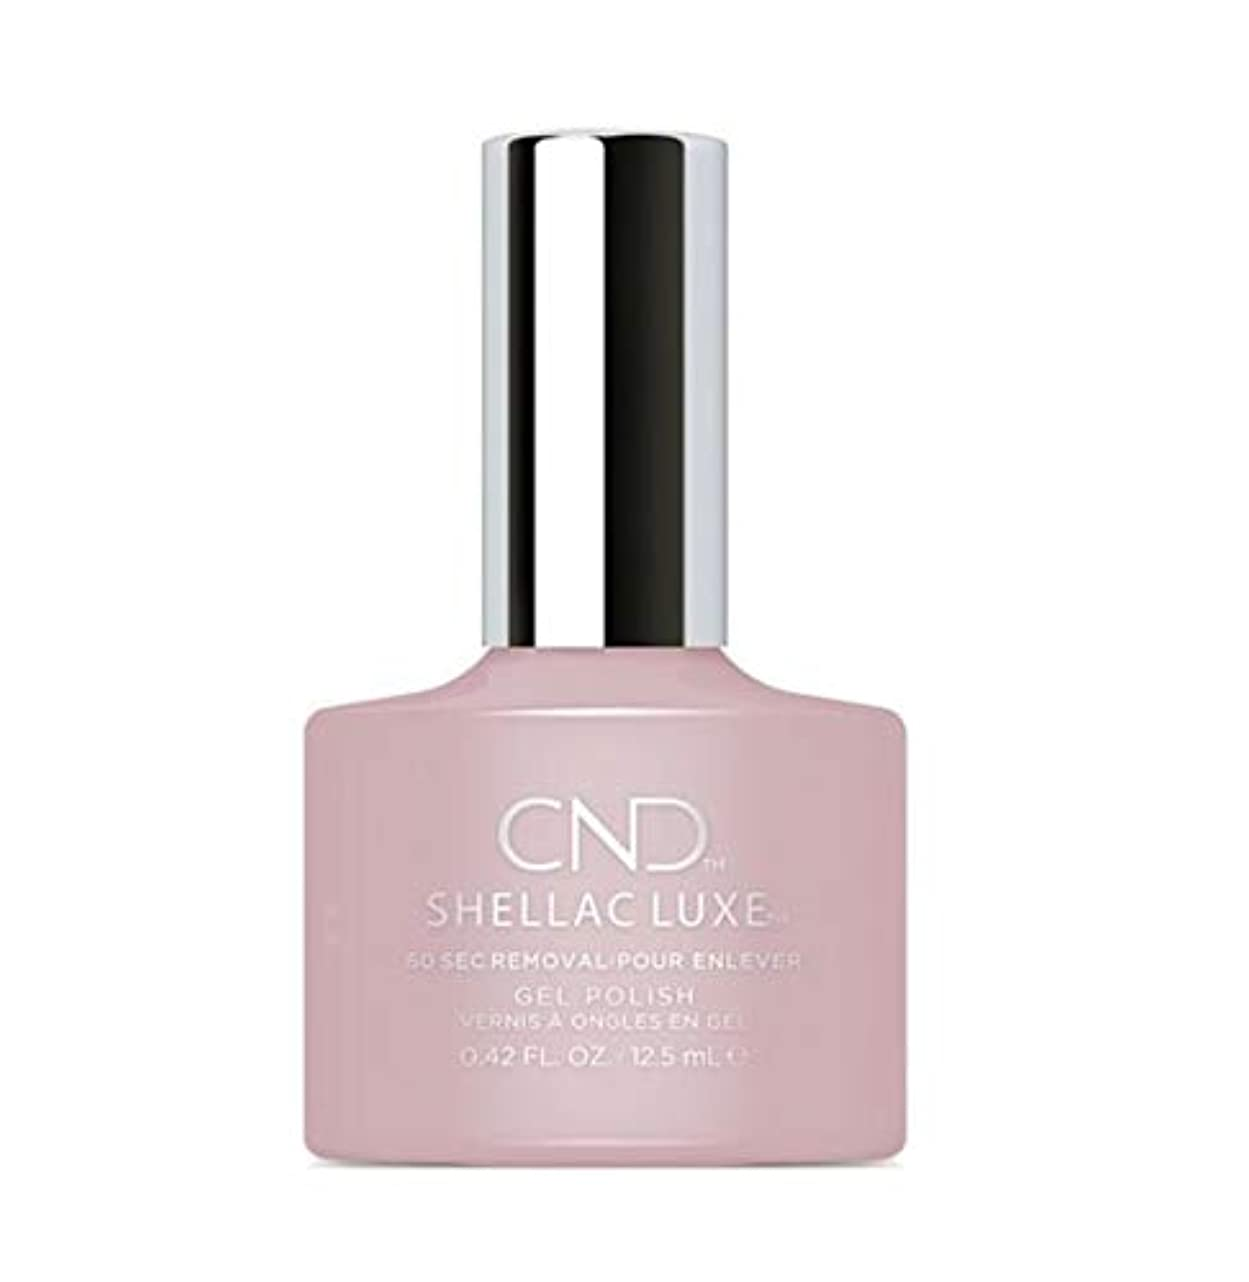 CND Shellac Luxe - Field Fox - 12.5 ml / 0.42 oz